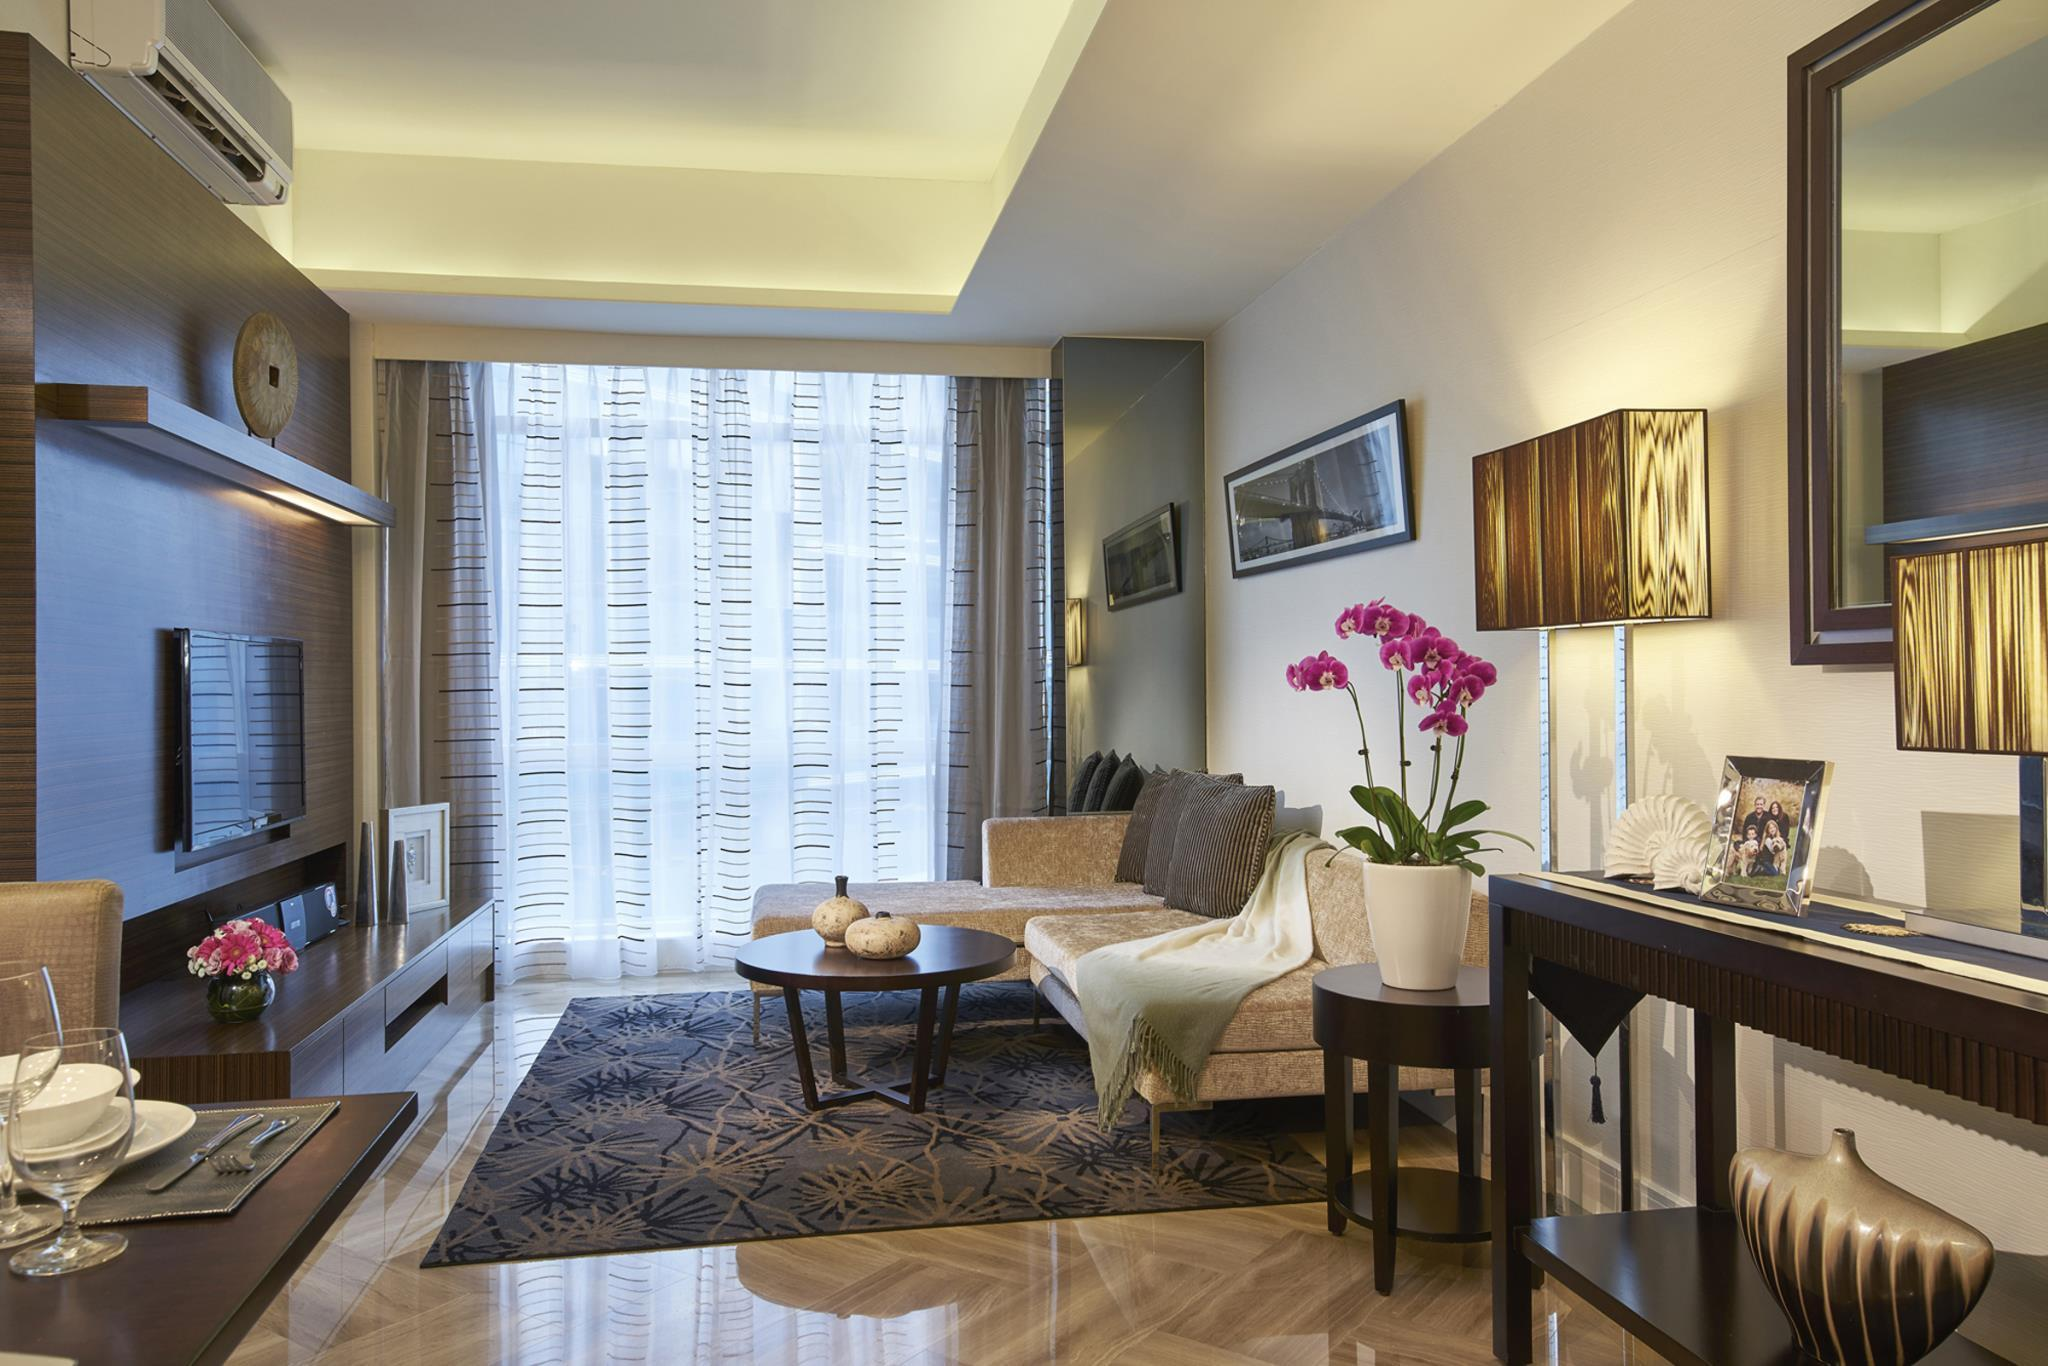 Orchard Scotts Residences by Far East Hospitality, Orchard